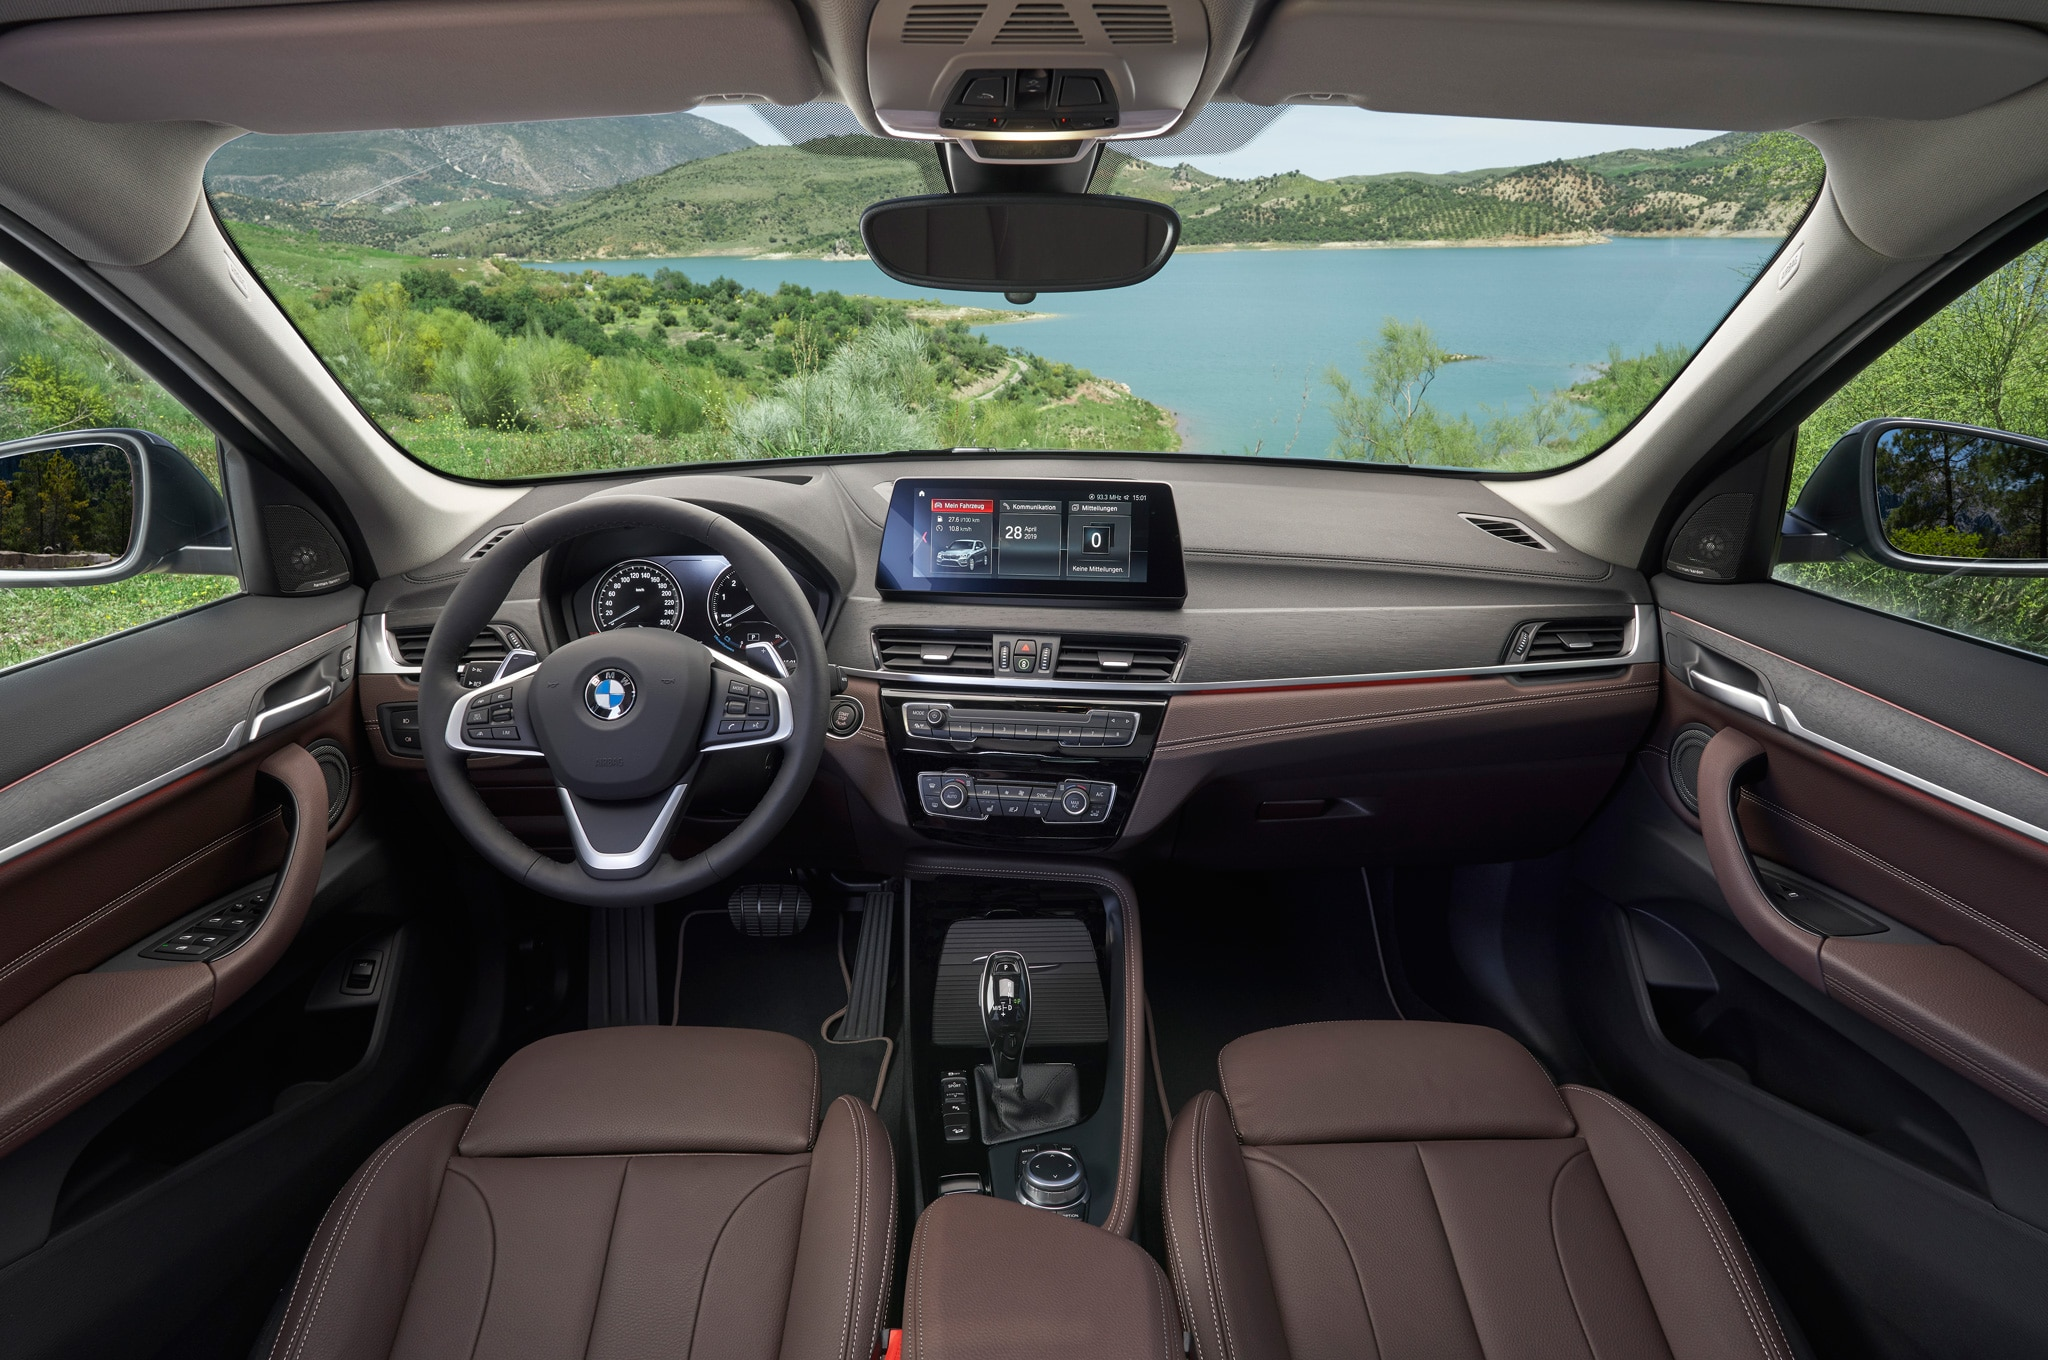 2020 Bmw X1 Gets Cosmetic And Interior Updates